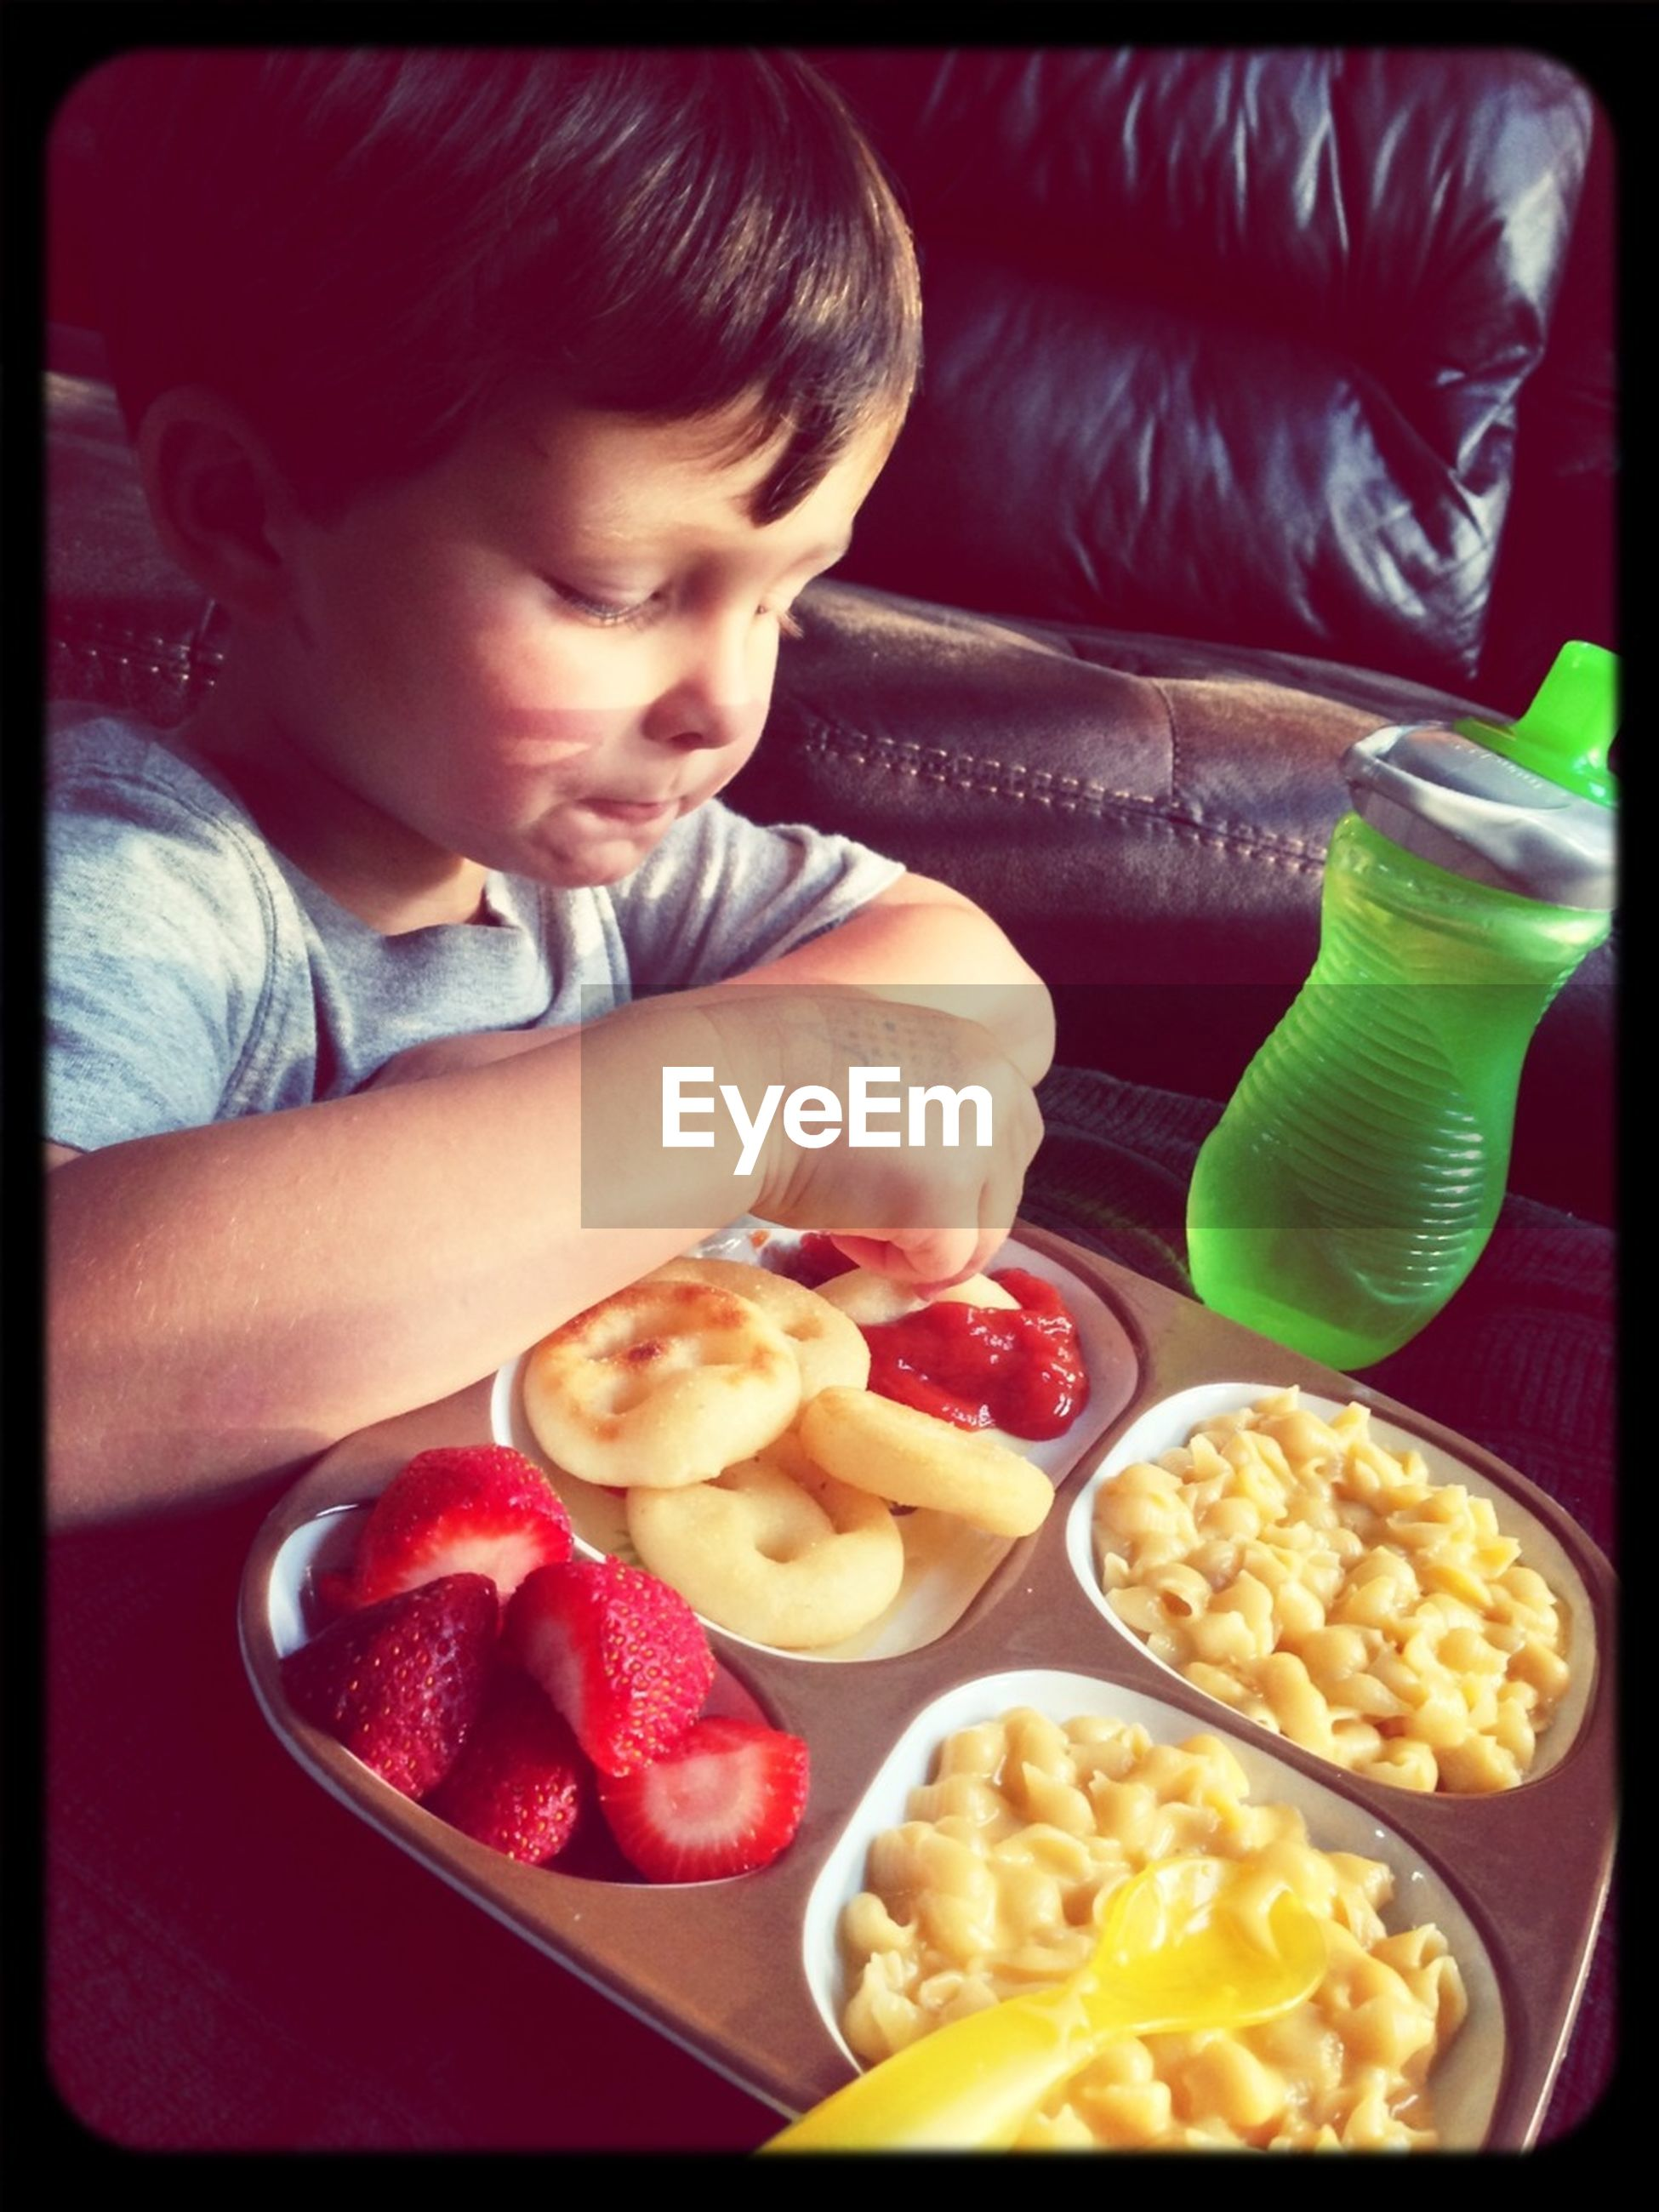 food and drink, food, indoors, transfer print, freshness, lifestyles, childhood, holding, elementary age, healthy eating, person, leisure activity, auto post production filter, ready-to-eat, casual clothing, boys, plate, cute